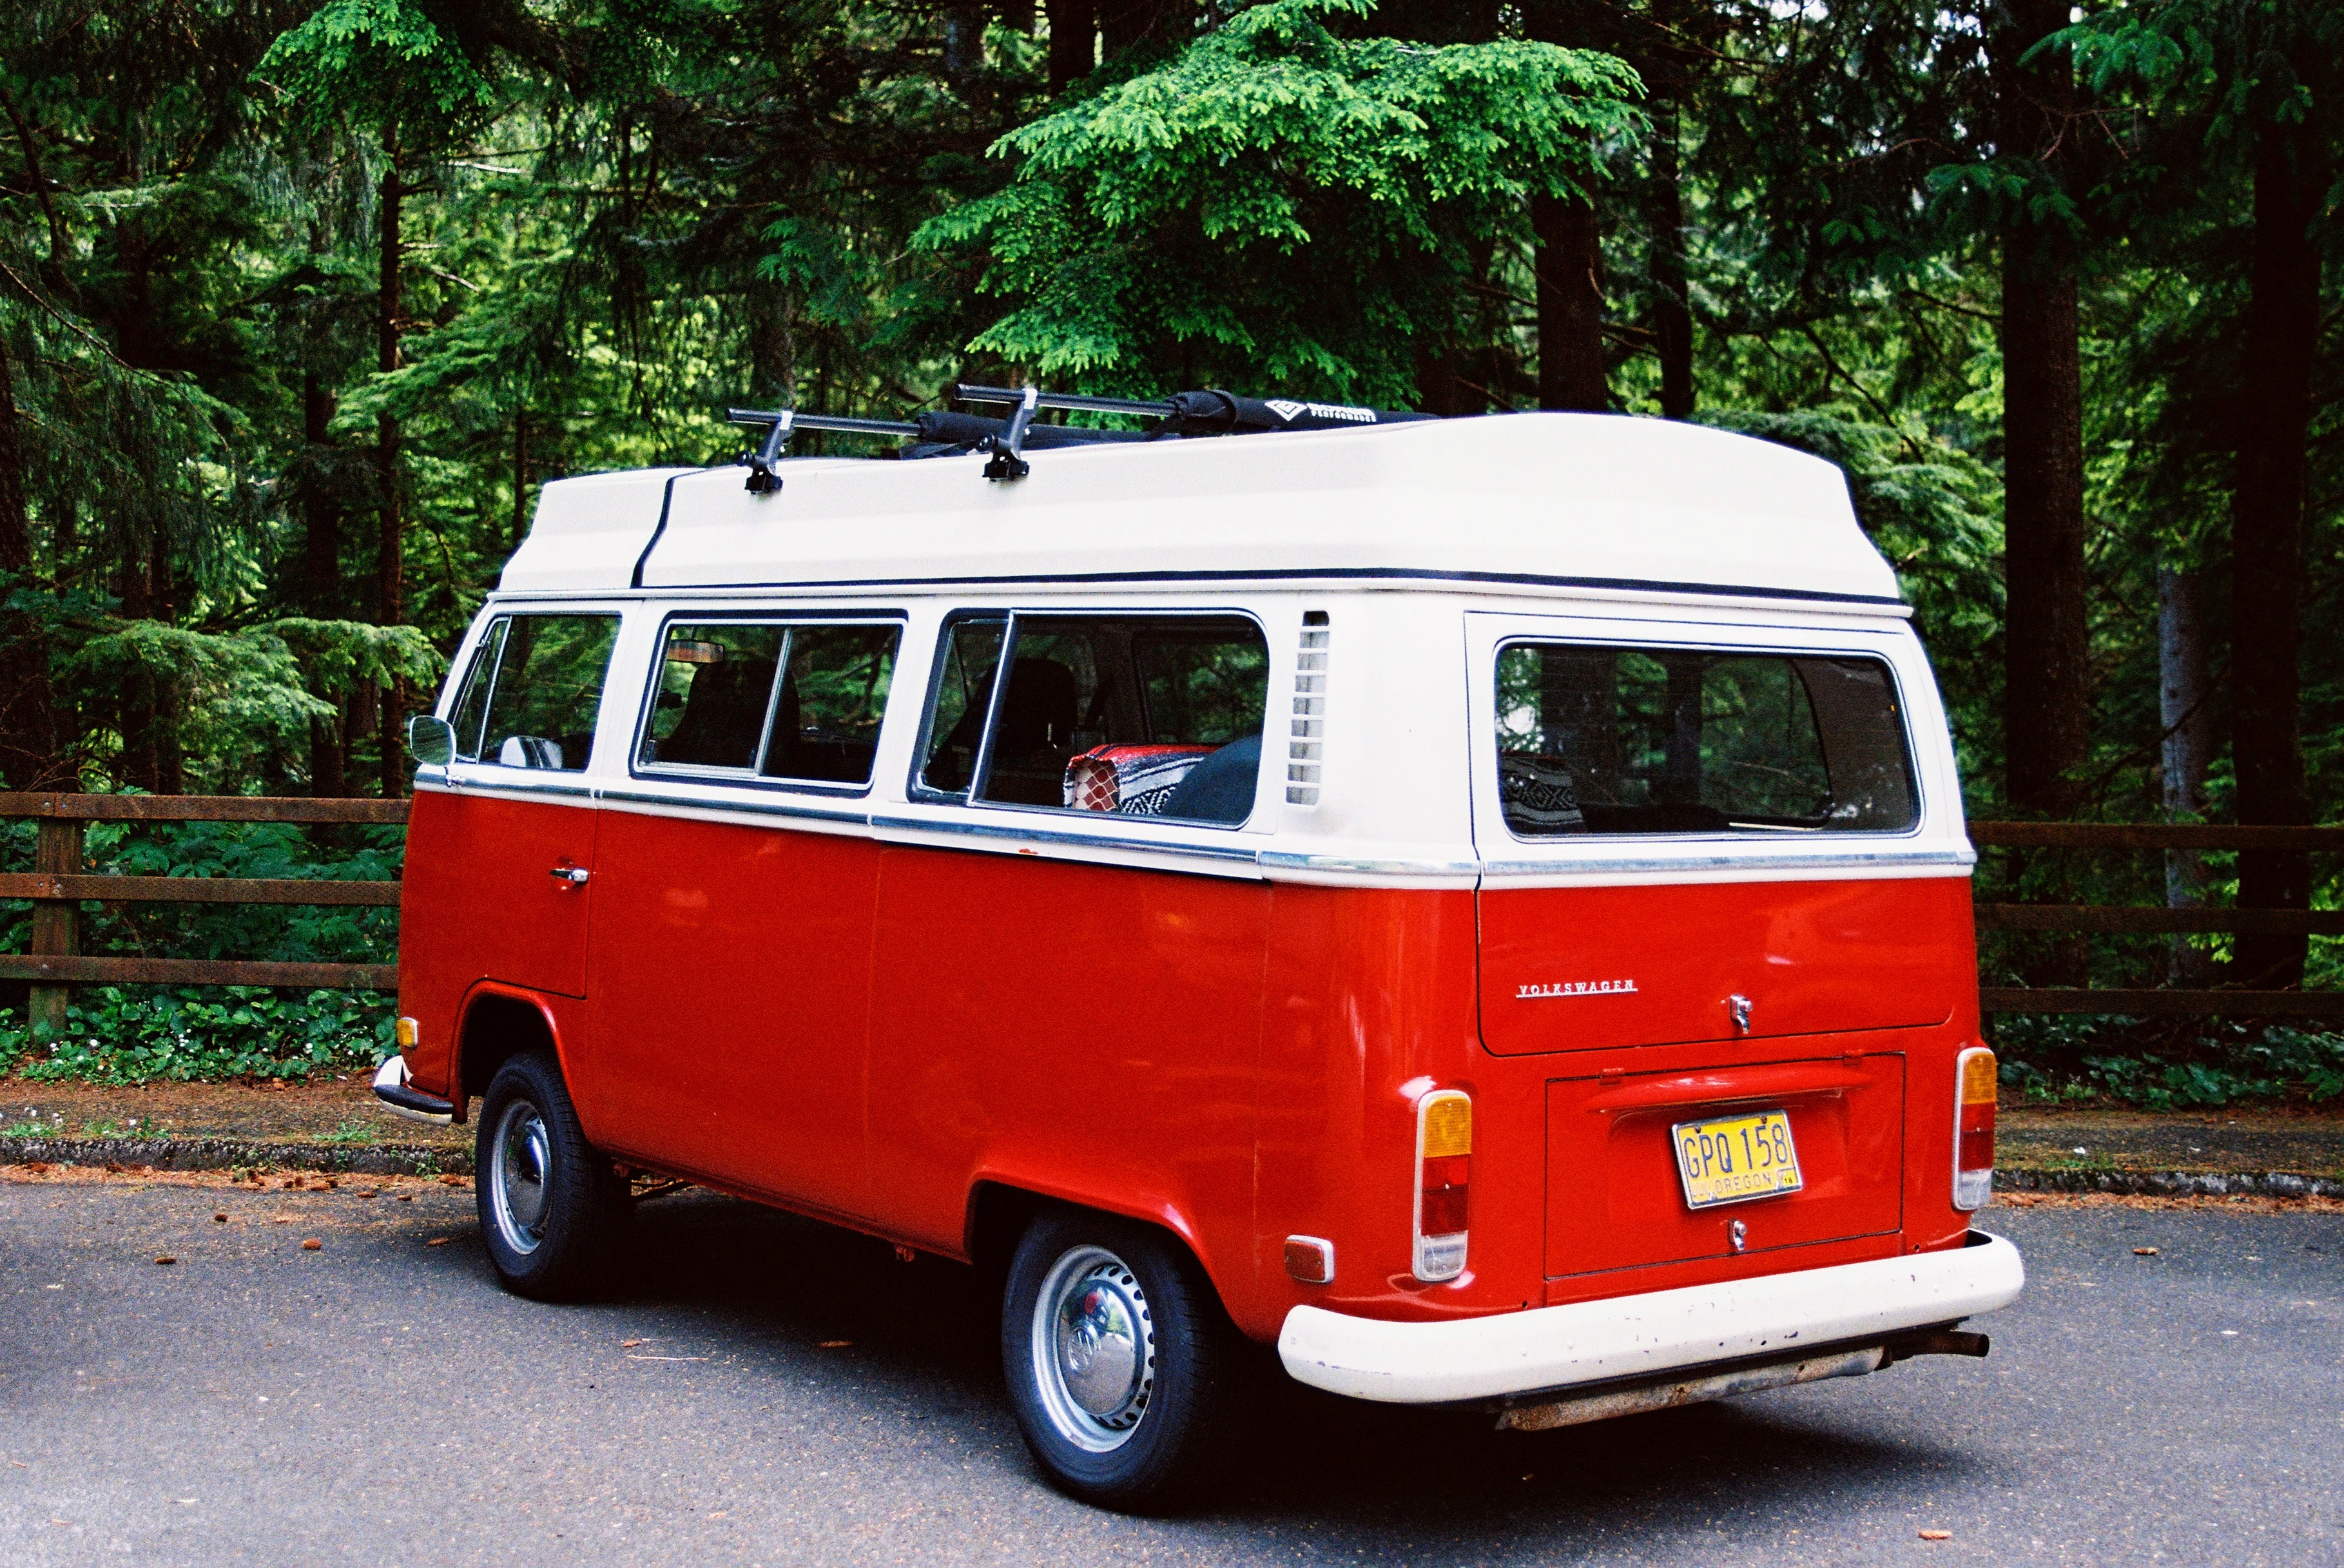 A red vintage Volkswagen camper van parked near a forest